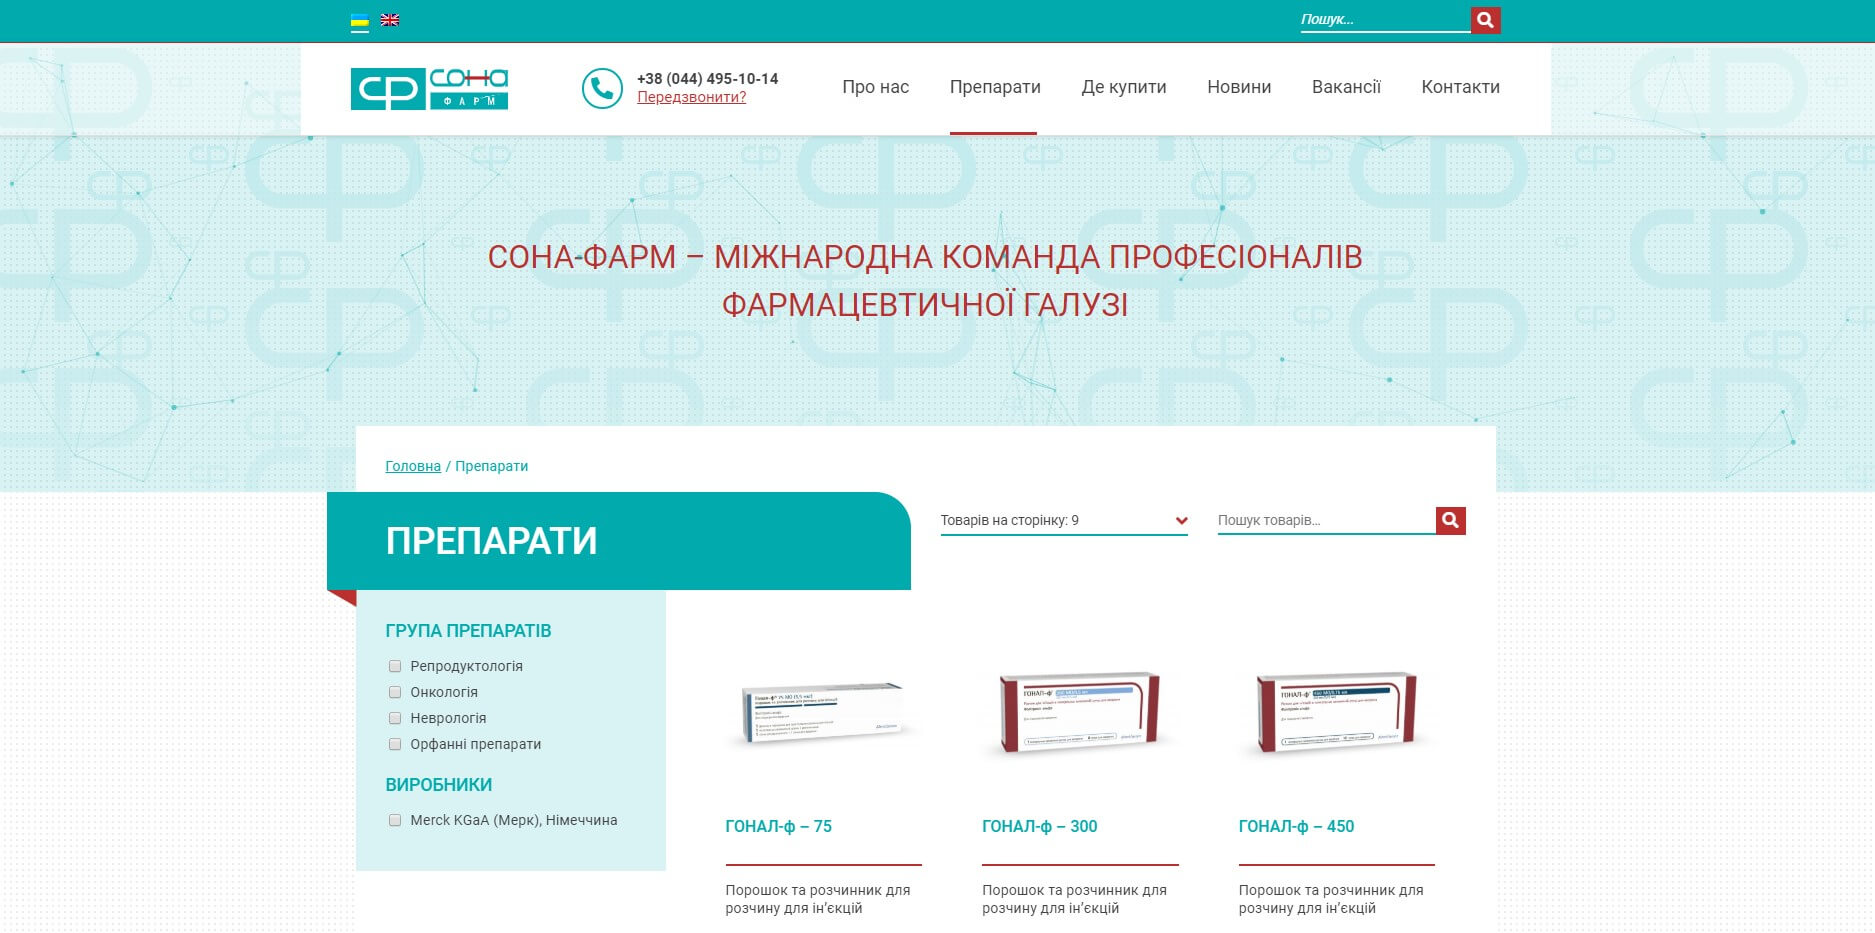 Corporate website development for Sona-Pharm pharmaceutical company portfolio